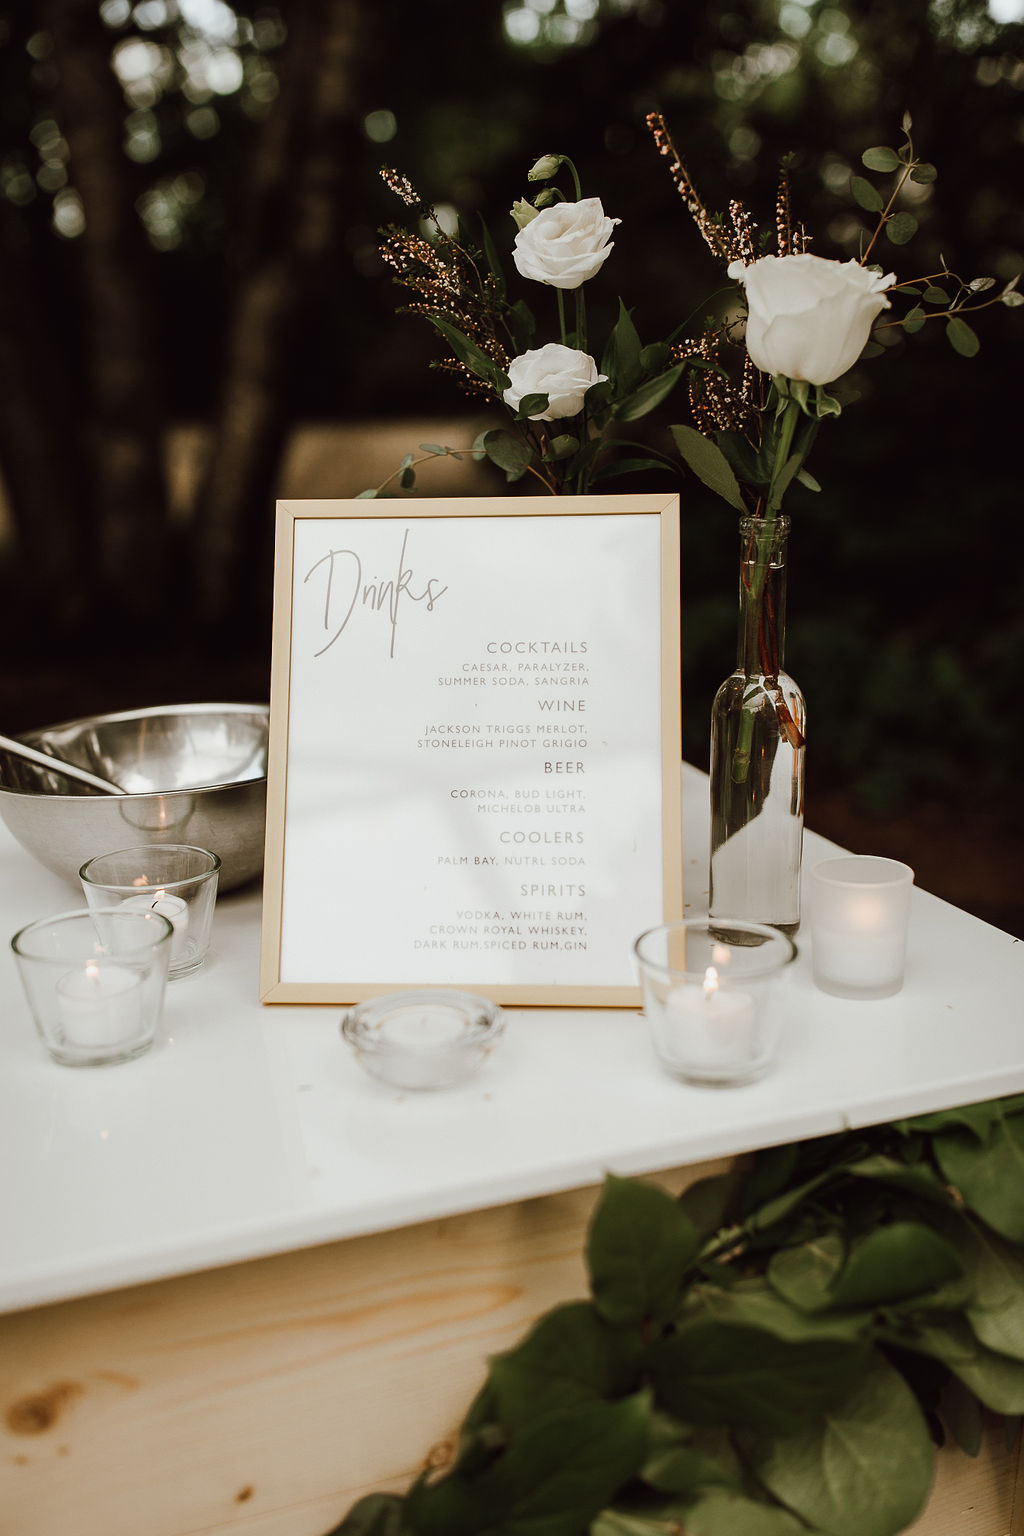 type of Bar you can offer at your wedding